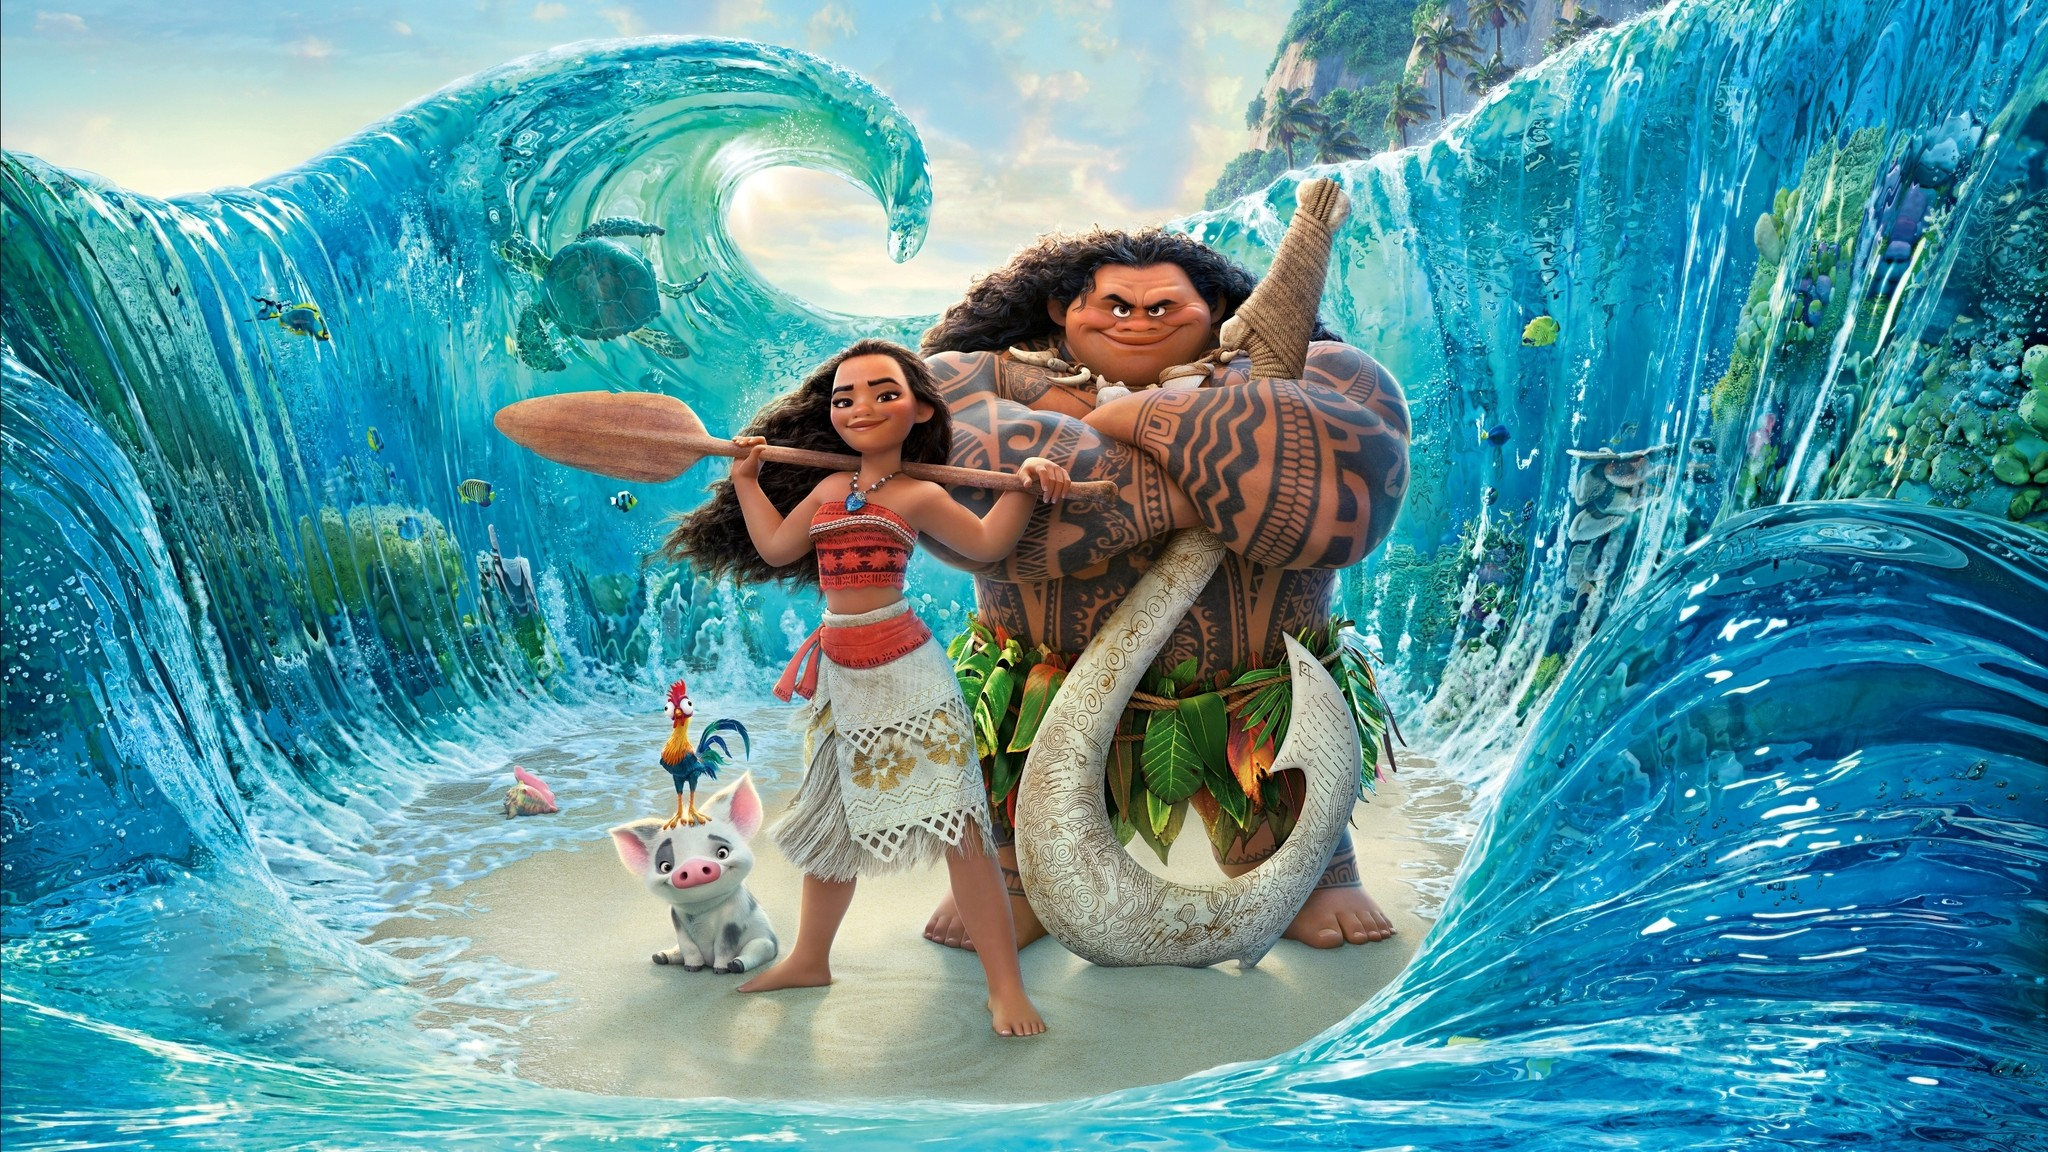 Moana HD Images #MoanaHDImages #Moana #movies #hdwallpapers #wallpapers